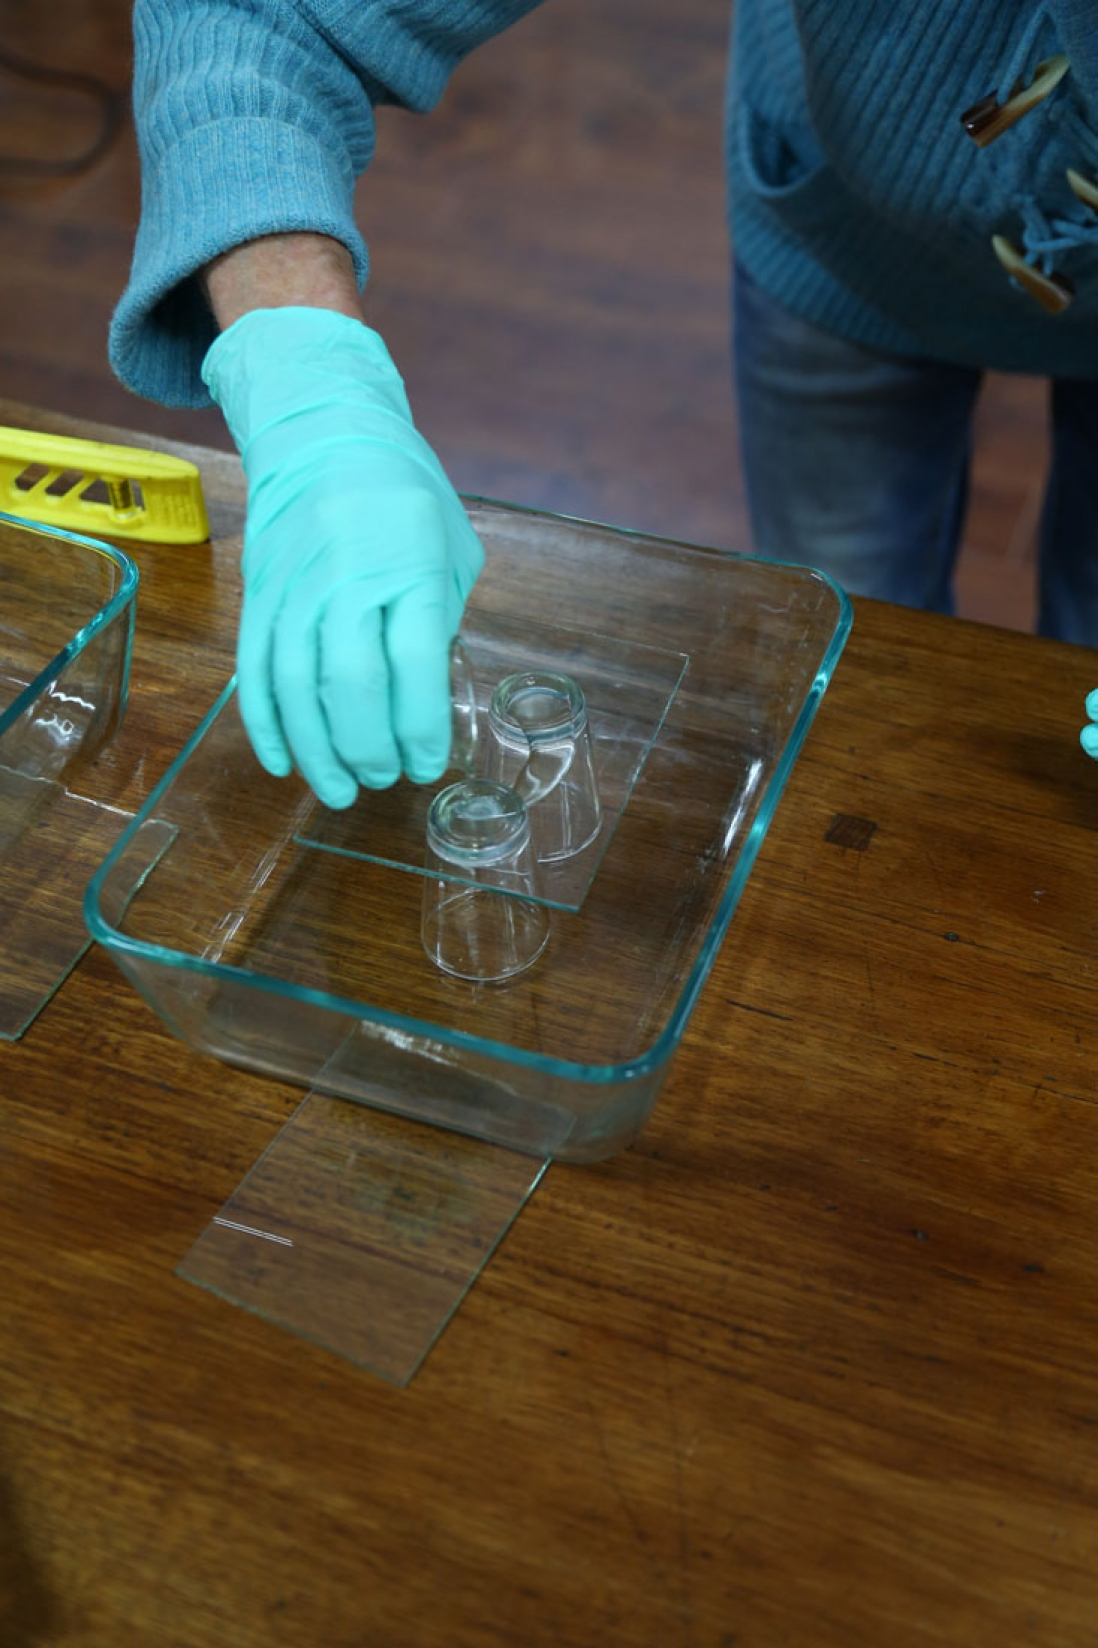 Blue gloved hand working with glass plates.